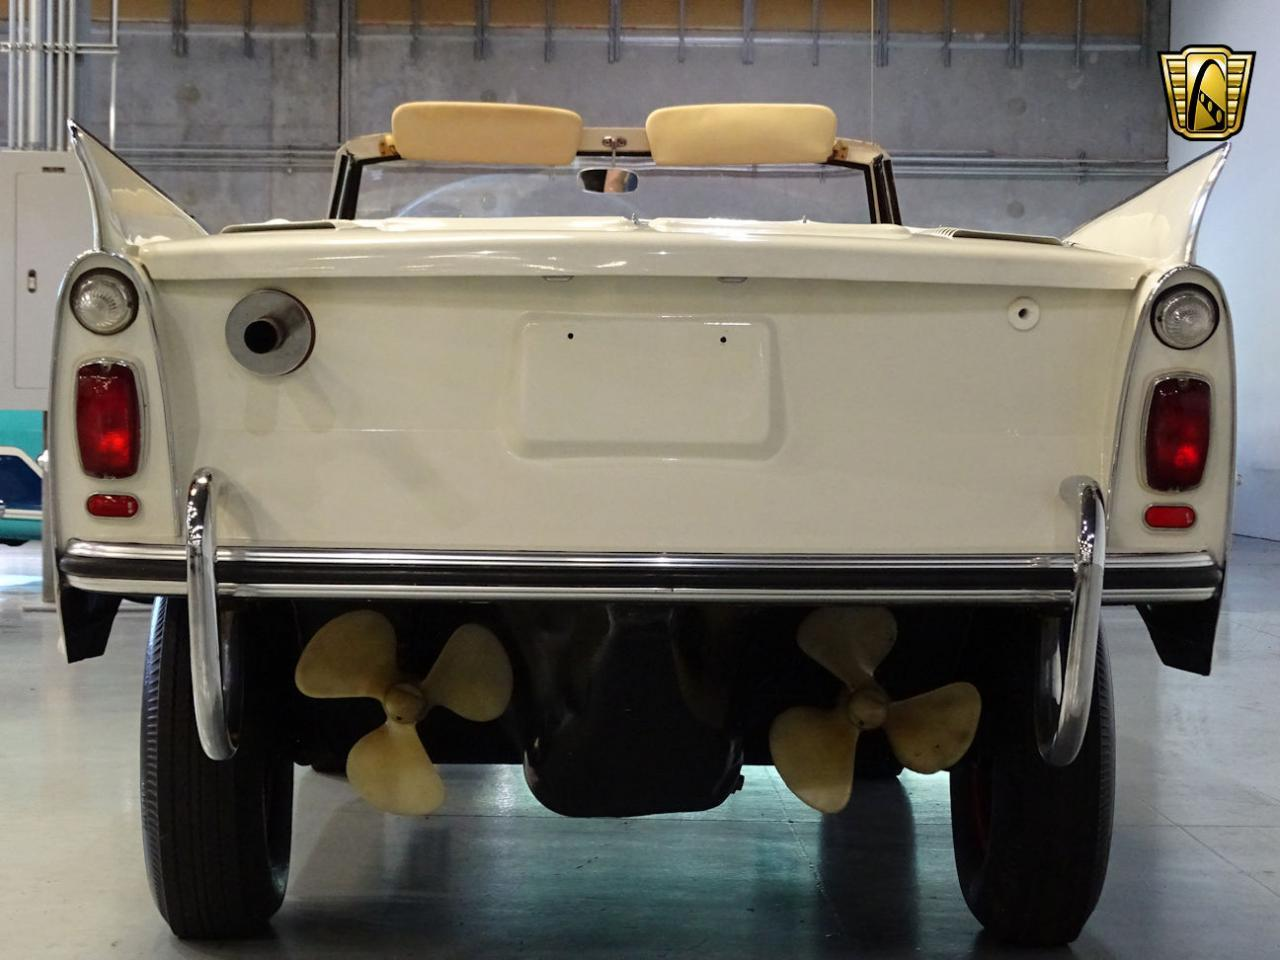 Large Picture of '67 Amphicar 770 located in Florida - $59,000.00 Offered by Gateway Classic Cars - Orlando - LI53